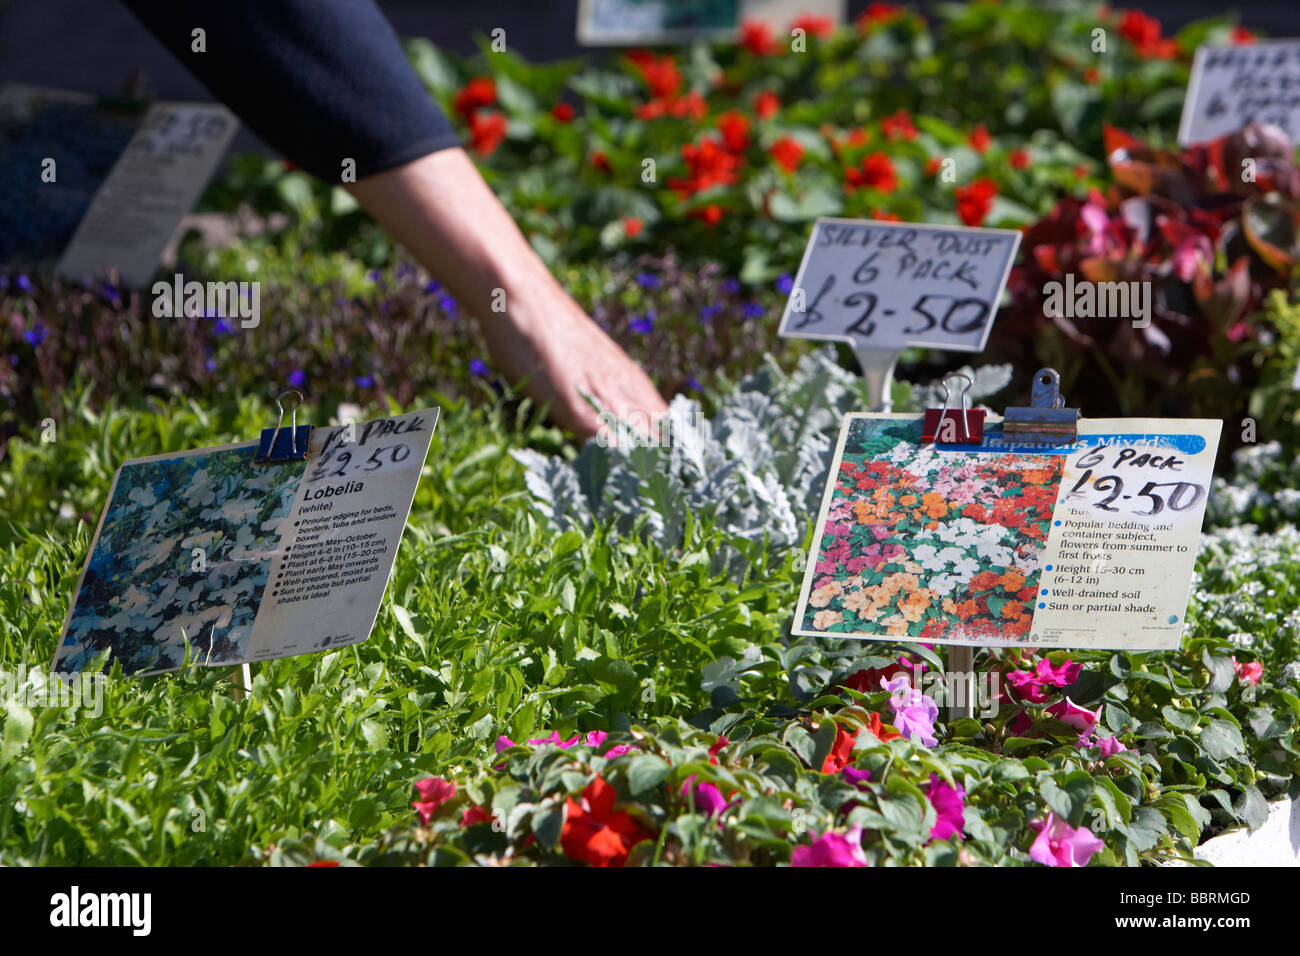 Garden Flowers For Sale At An Outdoor Market In The Uk With Names And  Prices Mans Hand In The Background